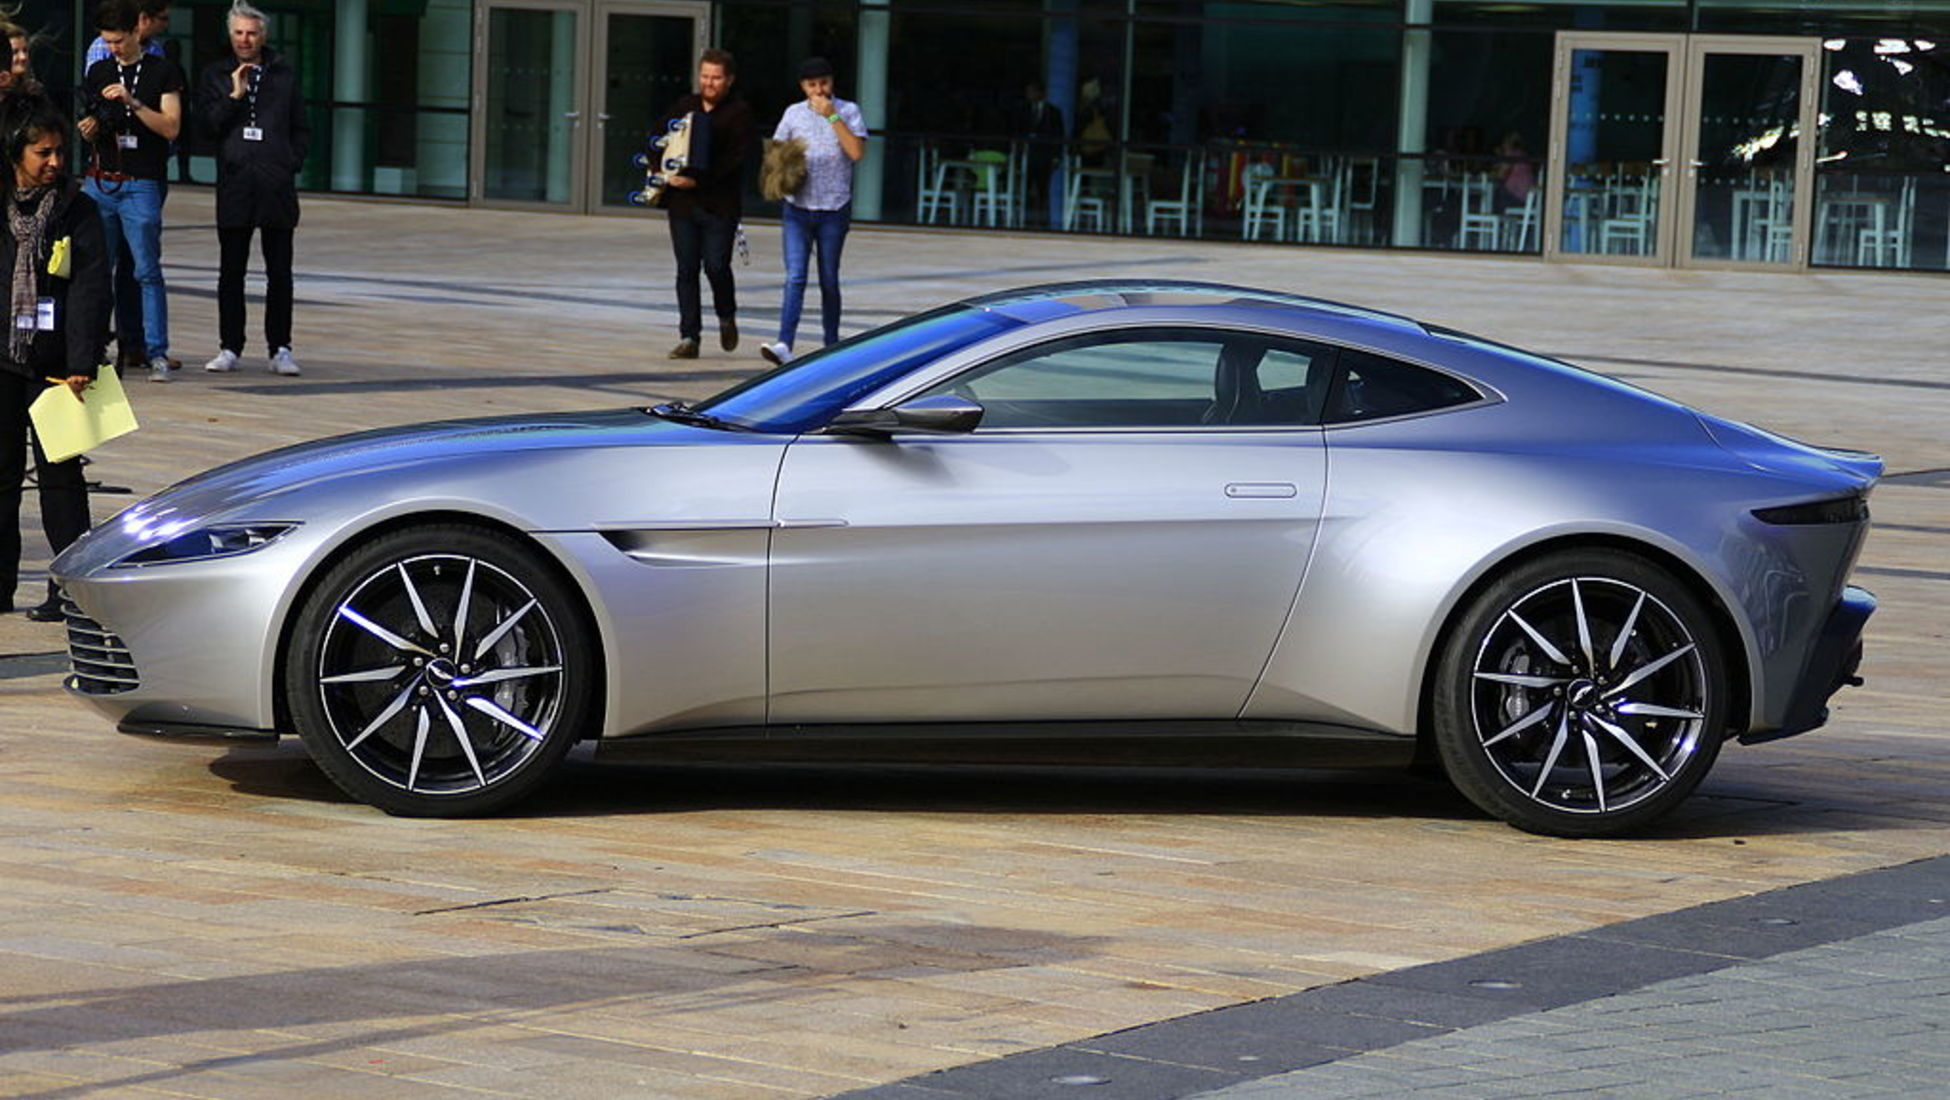 aston martin v8 james bond. james bond and his aston martin were truly a match made in heaven; the perfect gadget car for world\u0027s greatest super-spy. success of films v8